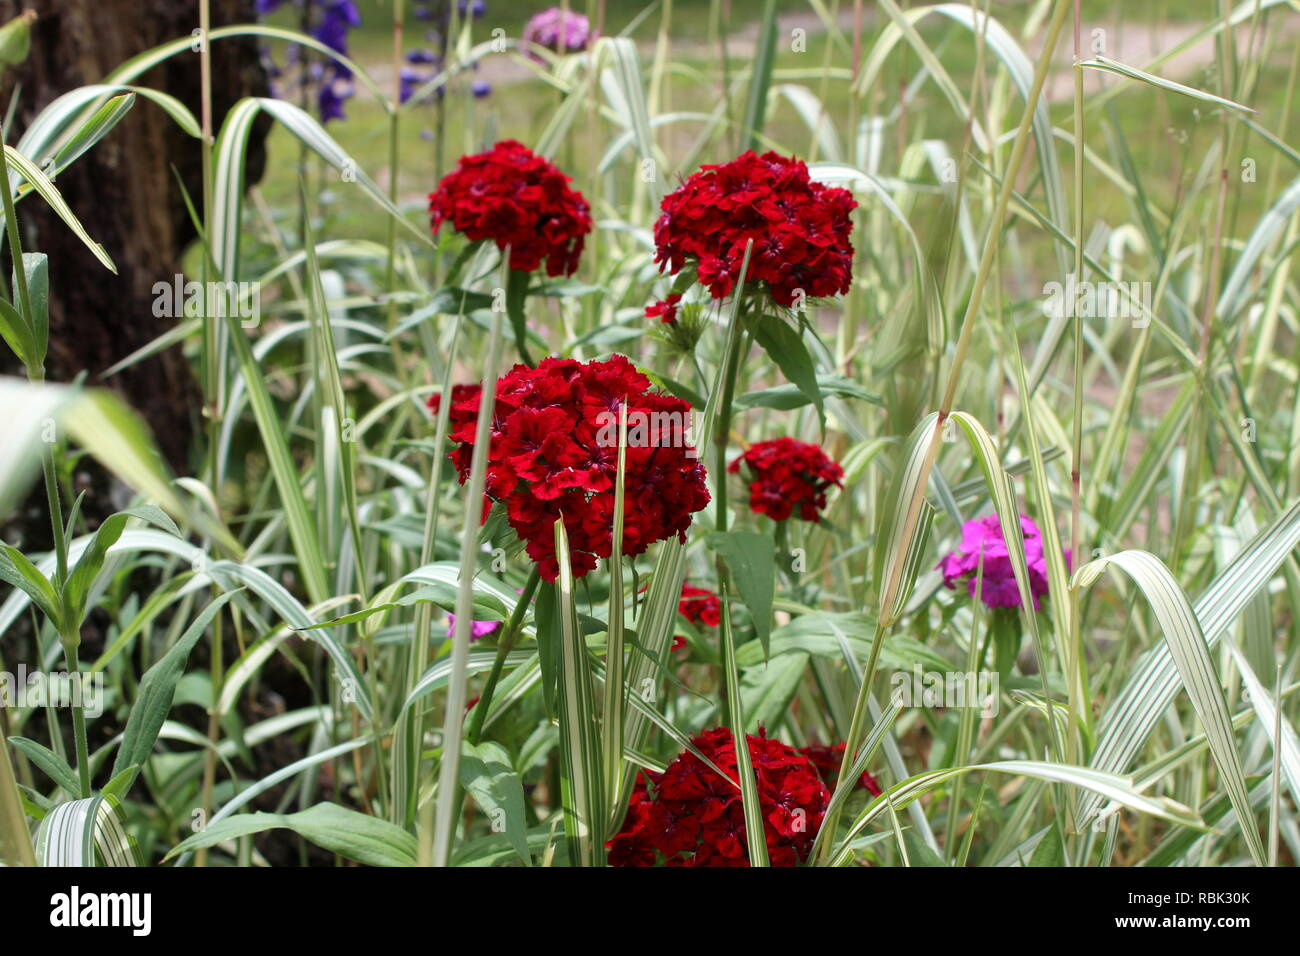 Crimson Red Sweet Williams Blooming In Ornamental Grass - Stock Image